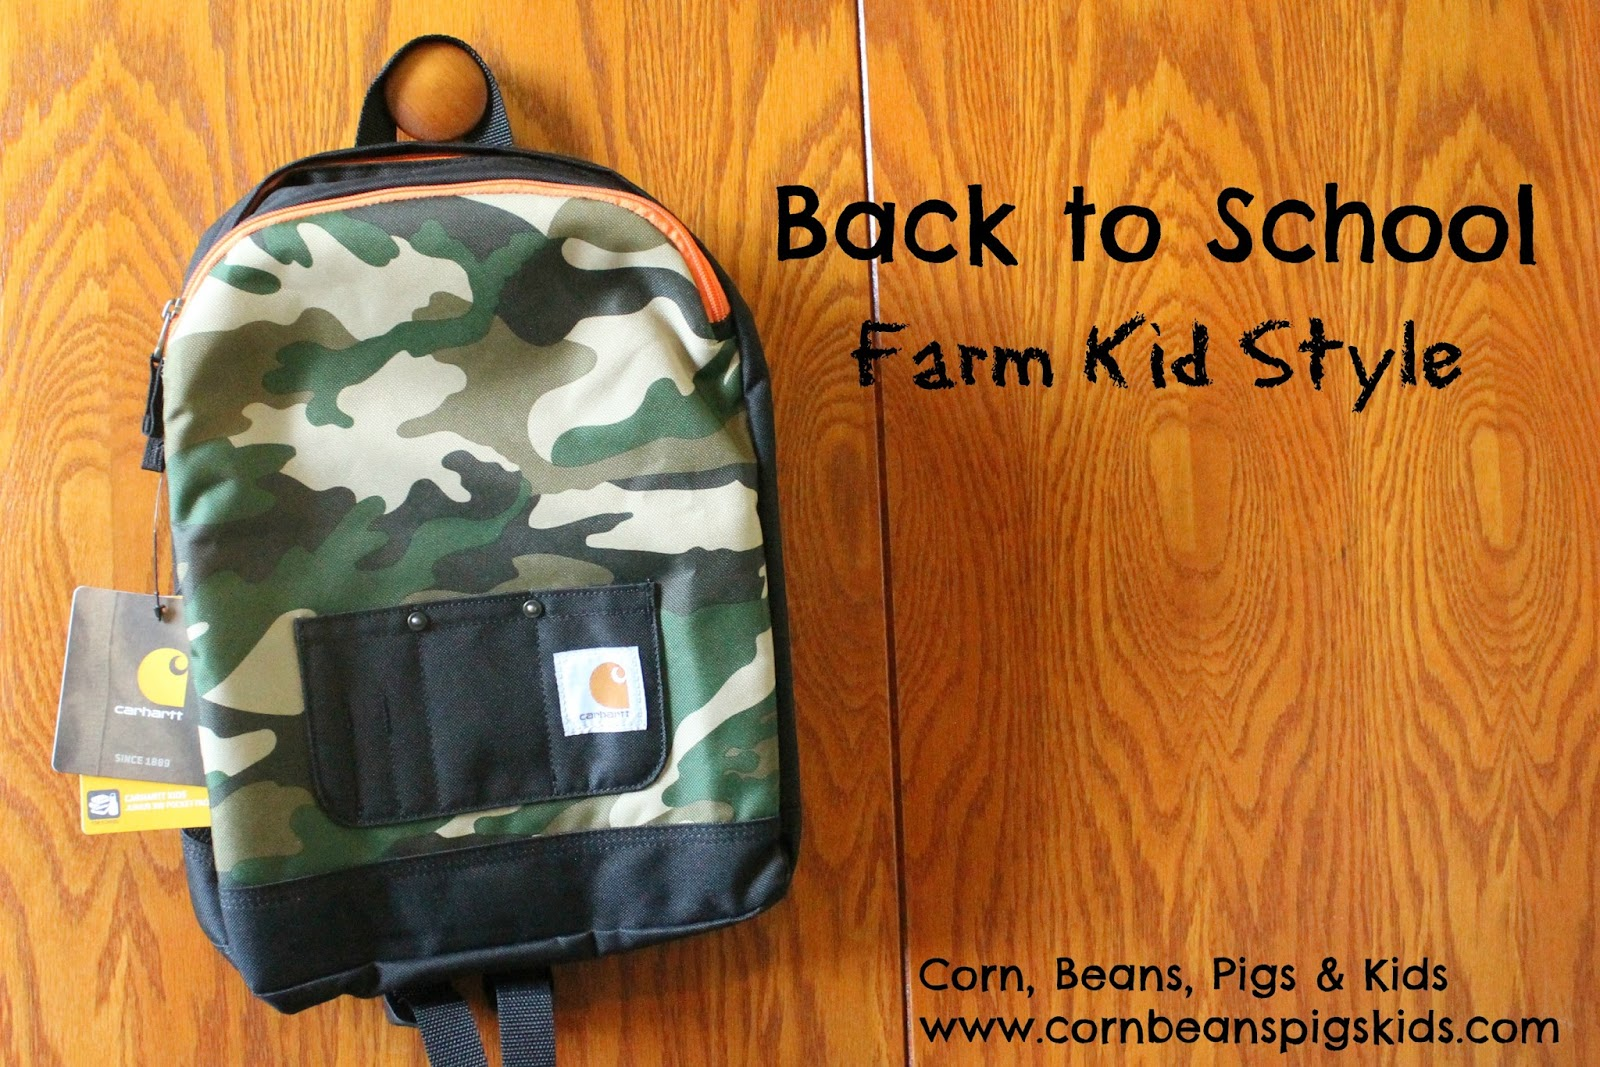 a402a73690 Corn, Beans, Pigs and Kids: Back to School Farm Kid Style with Carhartt